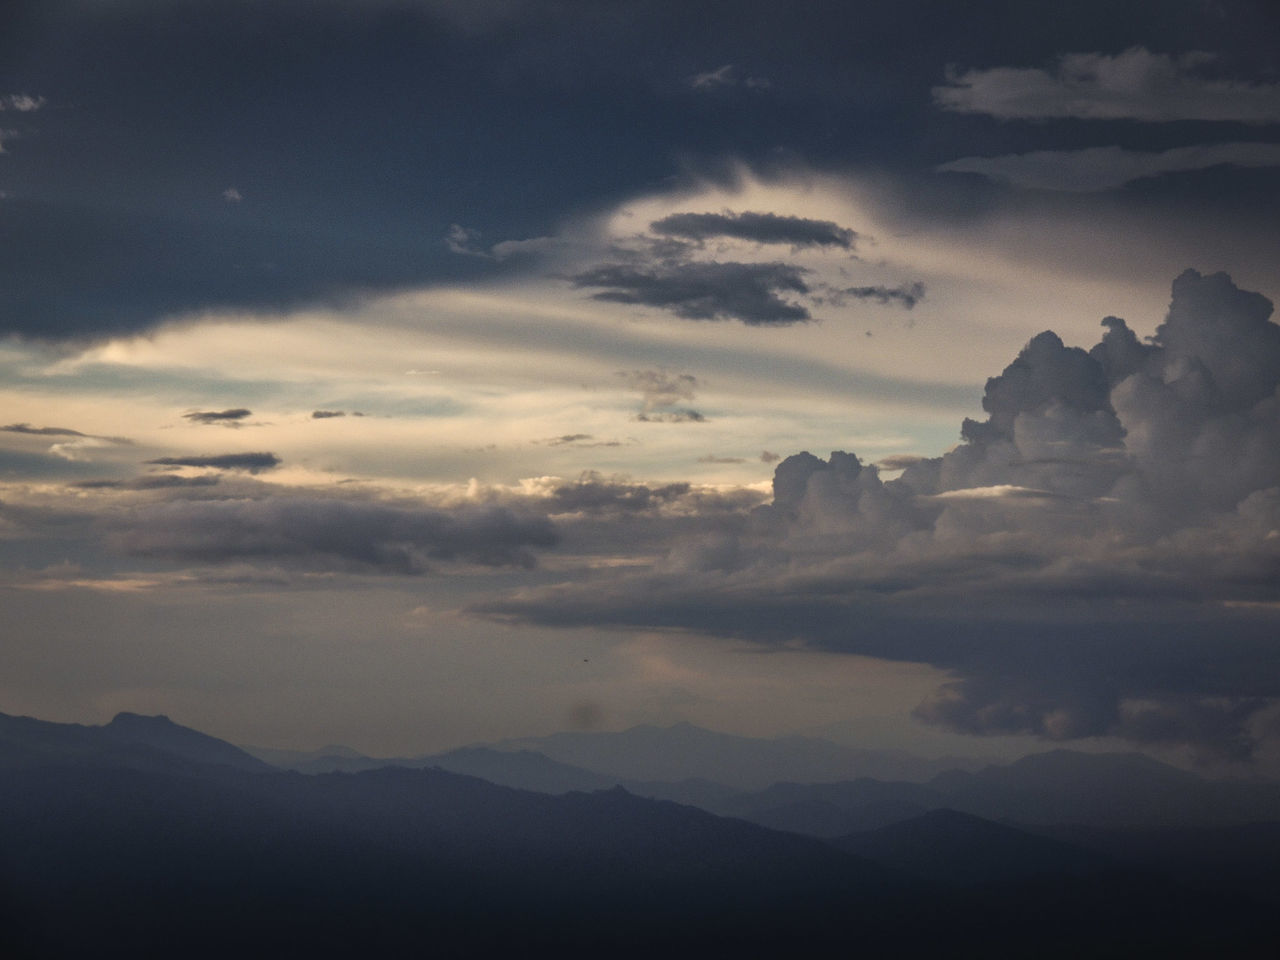 Beauty In Nature Cloud - Sky Day Idyllic Landscape Landscapes Lesotho Mountain Nature Nature Nature_collection Naturelovers No People Outdoor Outdoor Photography Outdoors Outside Scenics Silhouette Sky Sunset Tranquil Scene Tranquility Usambara UsambaraMountains